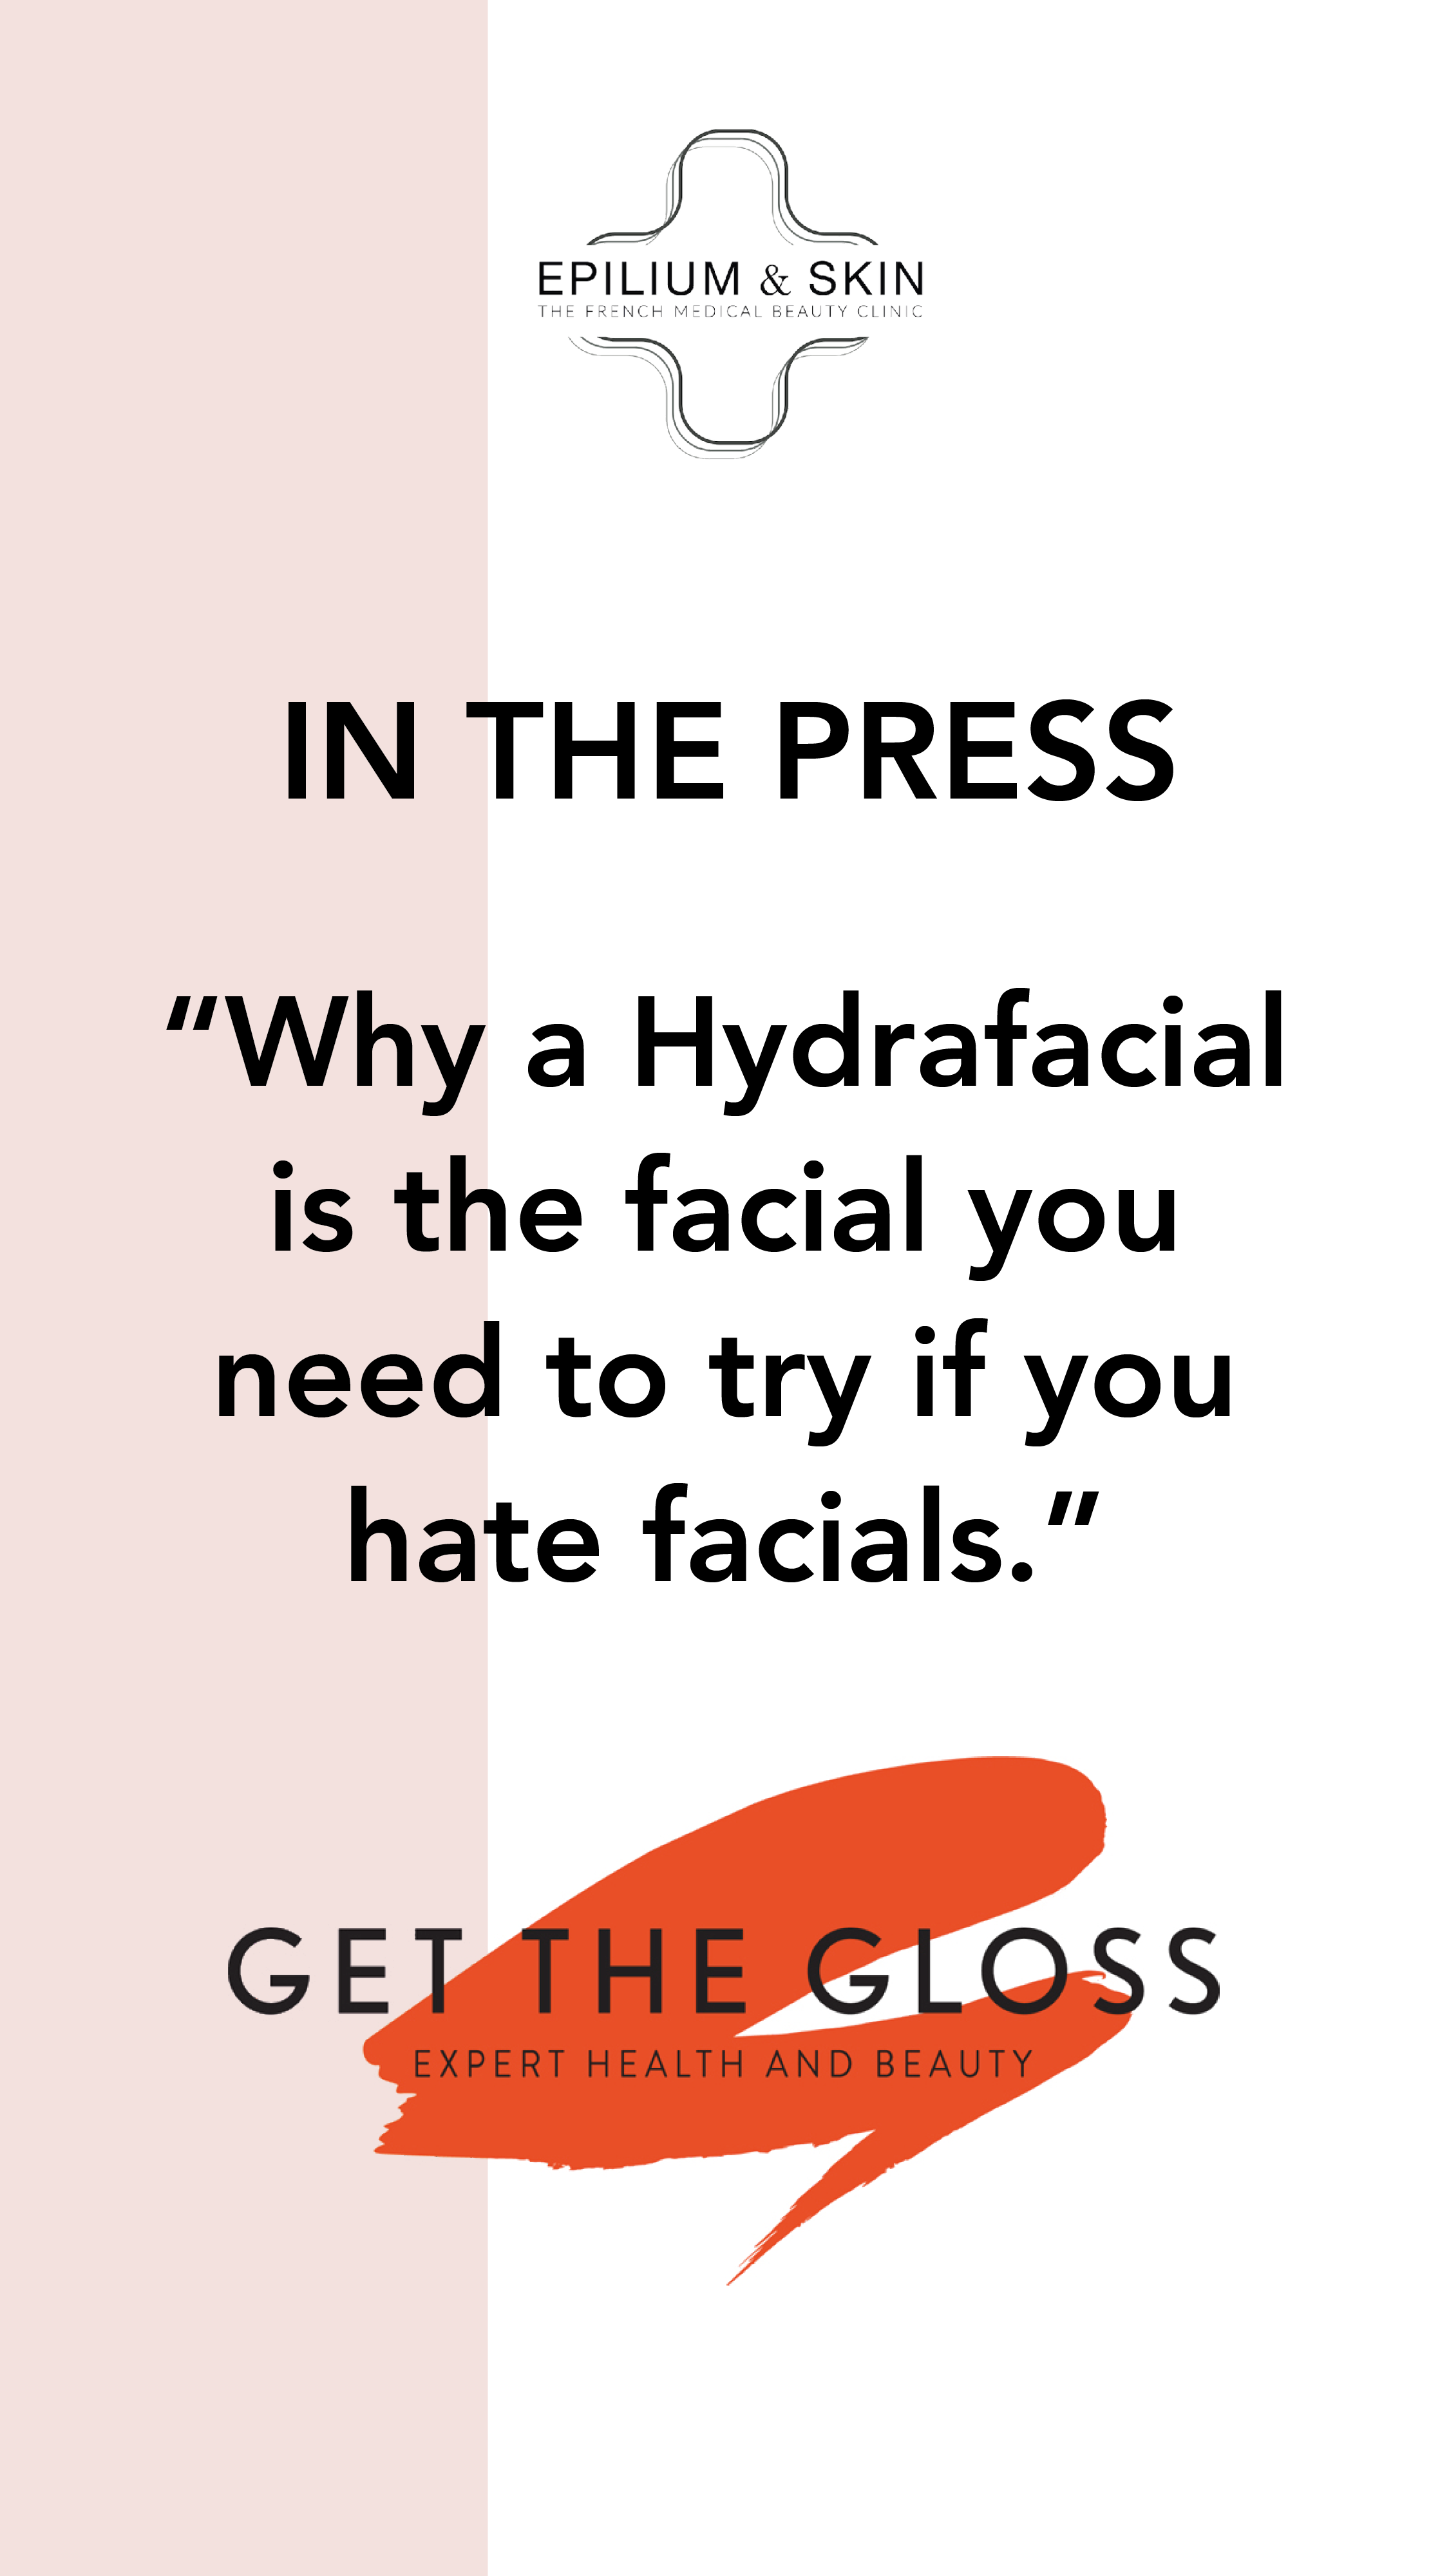 Getthegloss may 2019